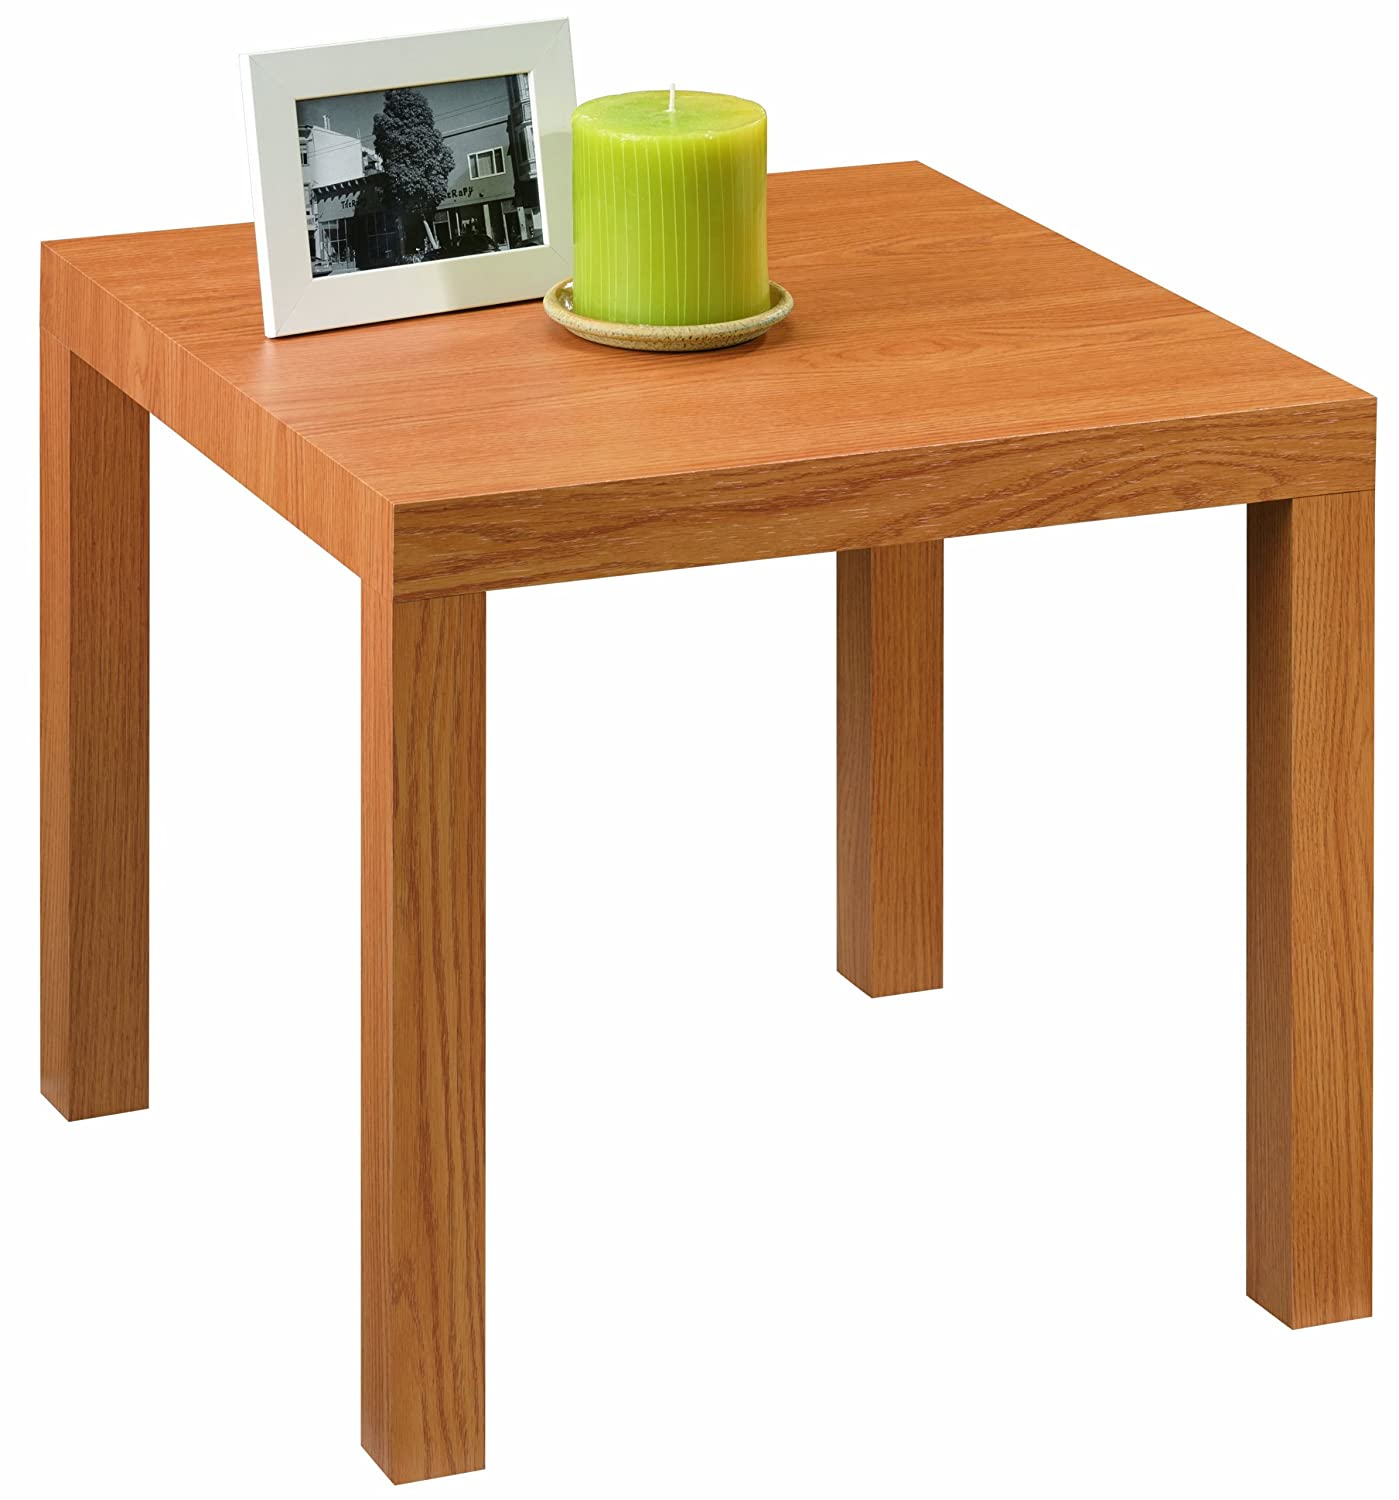 Modern natural wood grain end table living room furniture for Coffee end tables